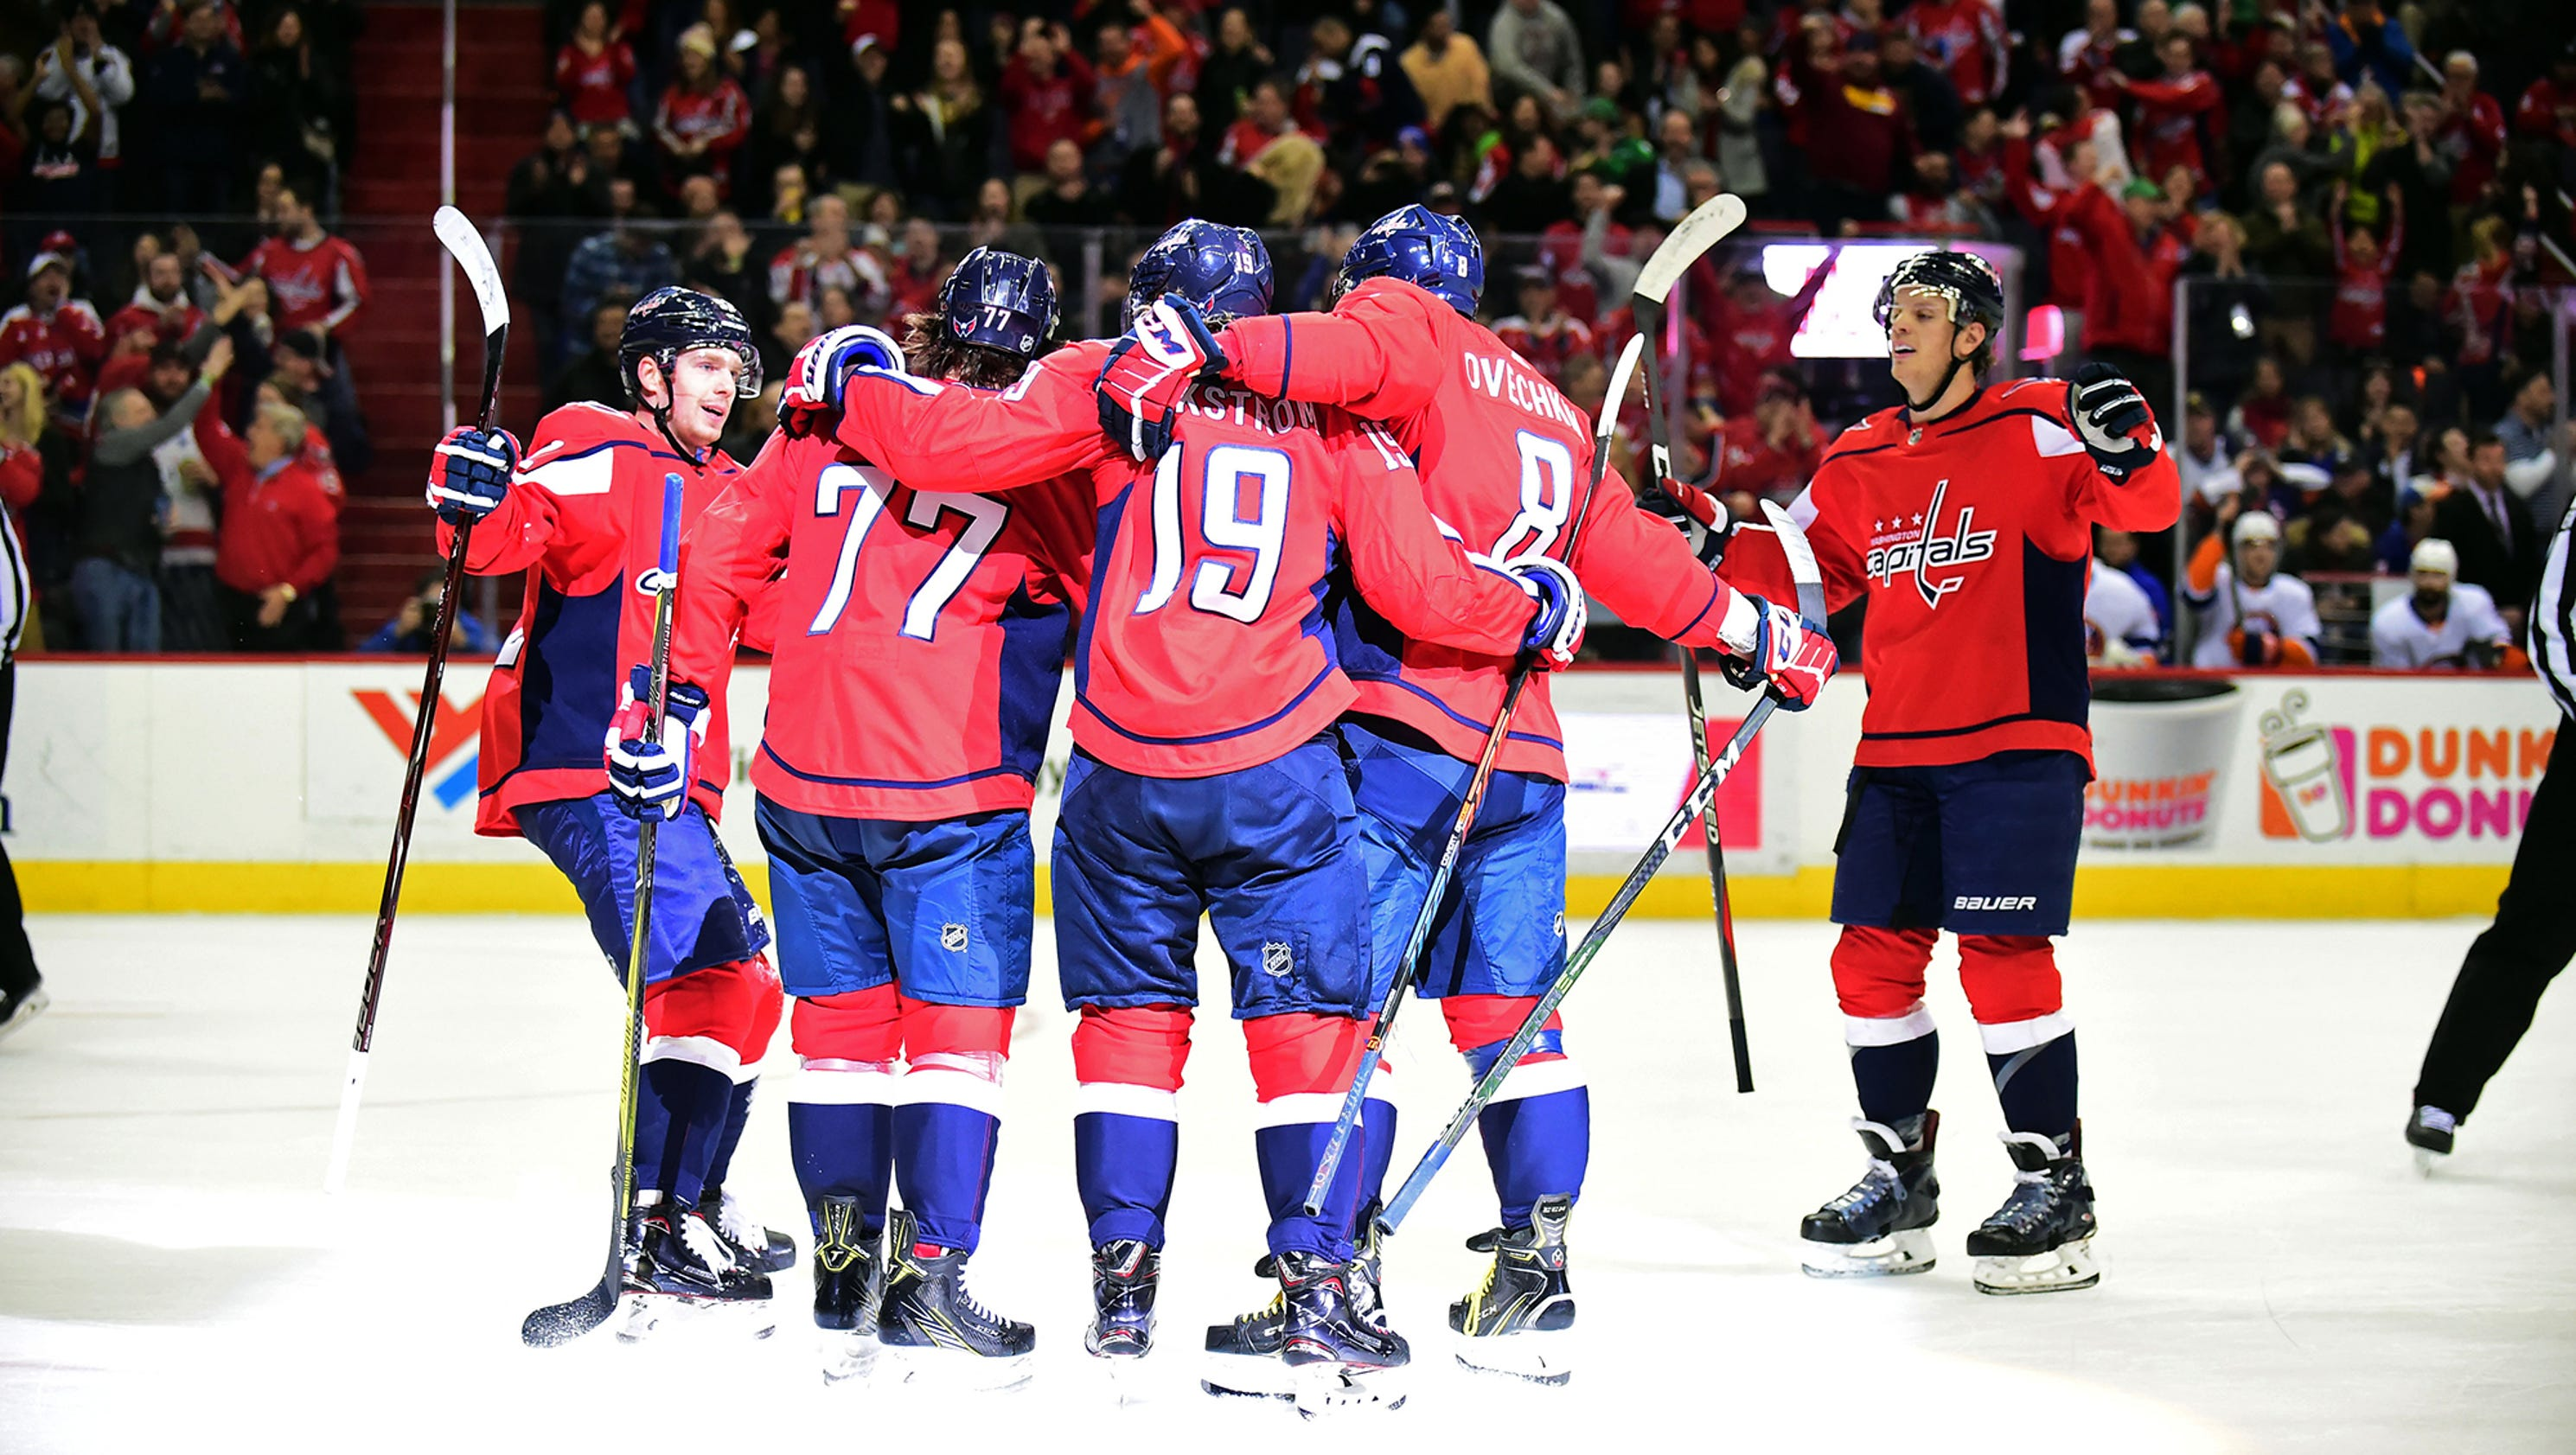 636568366050099388-usp-nhl--new-york-islanders-at-washington-capitals